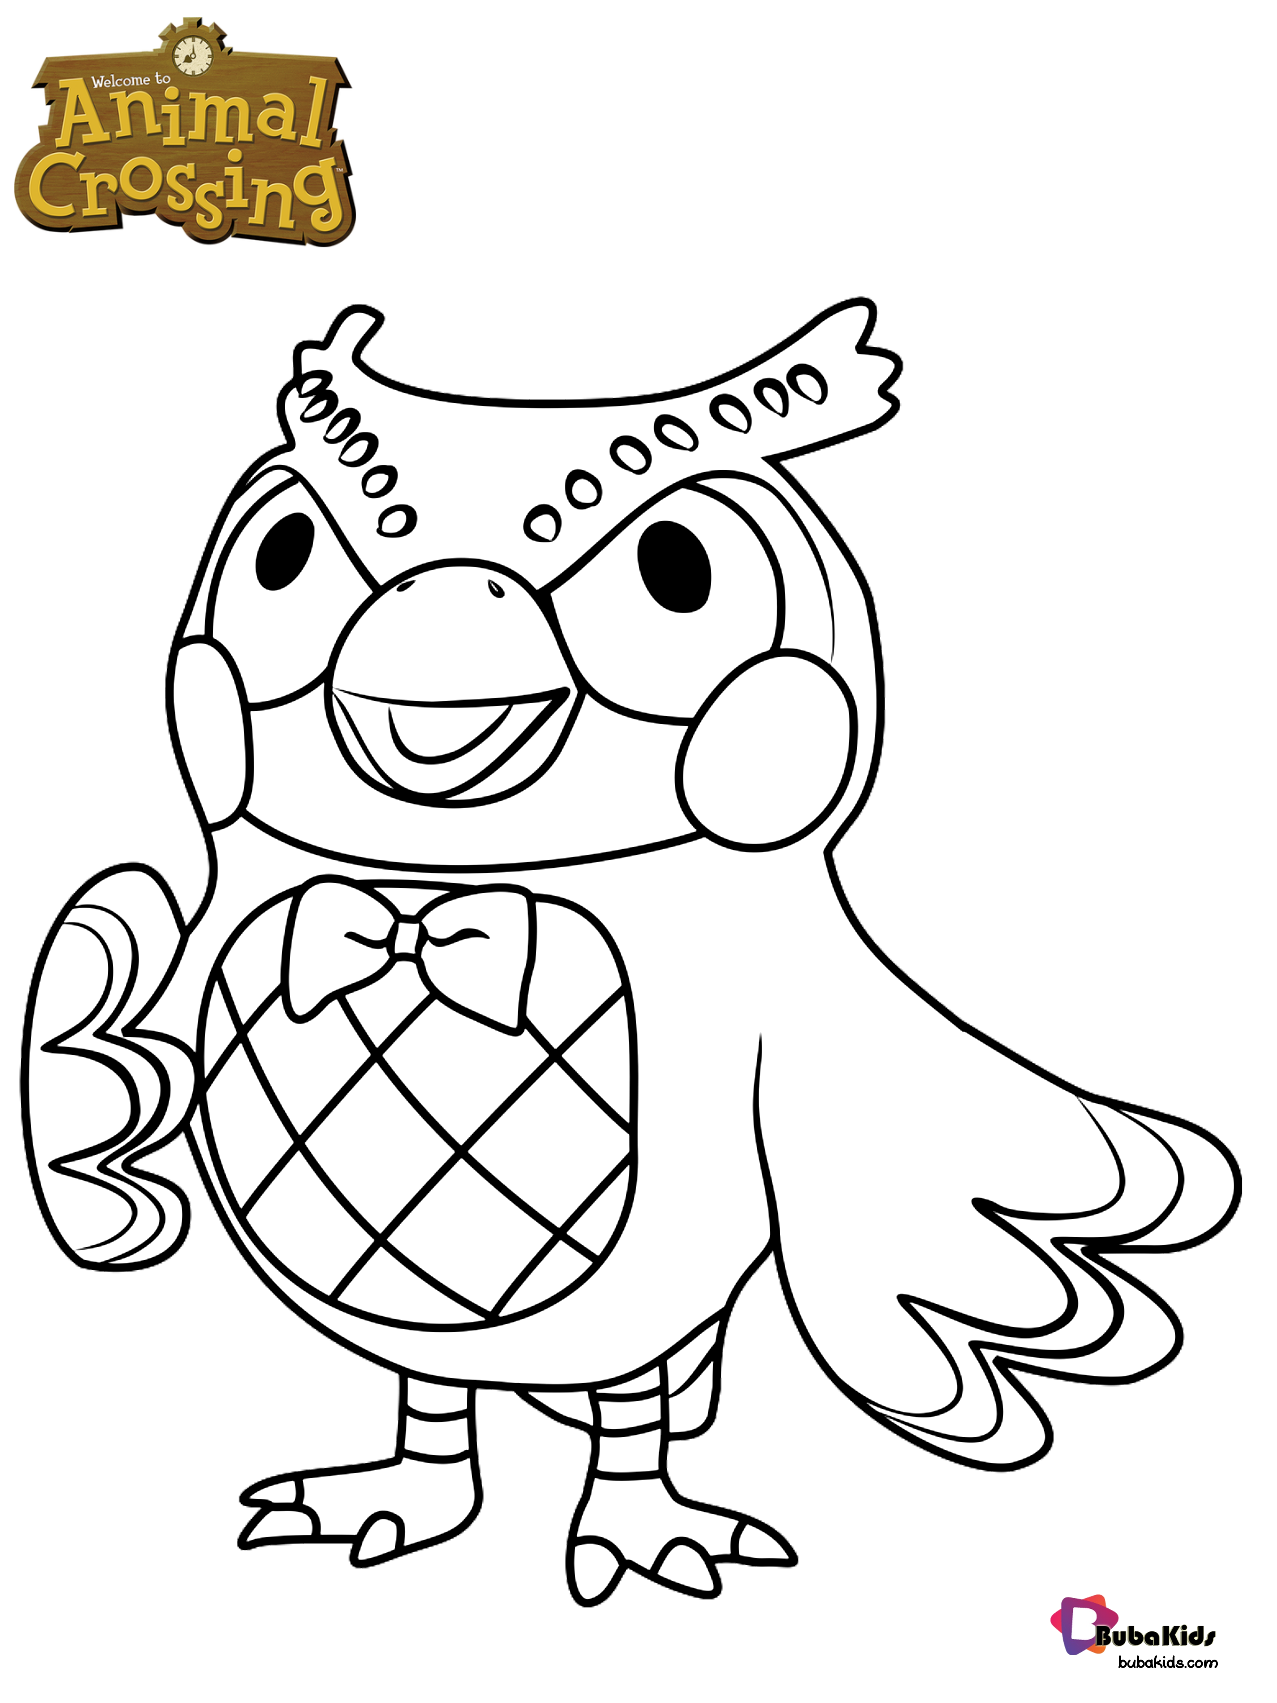 Blathers the owl animal crossing character coloring page Wallpaper